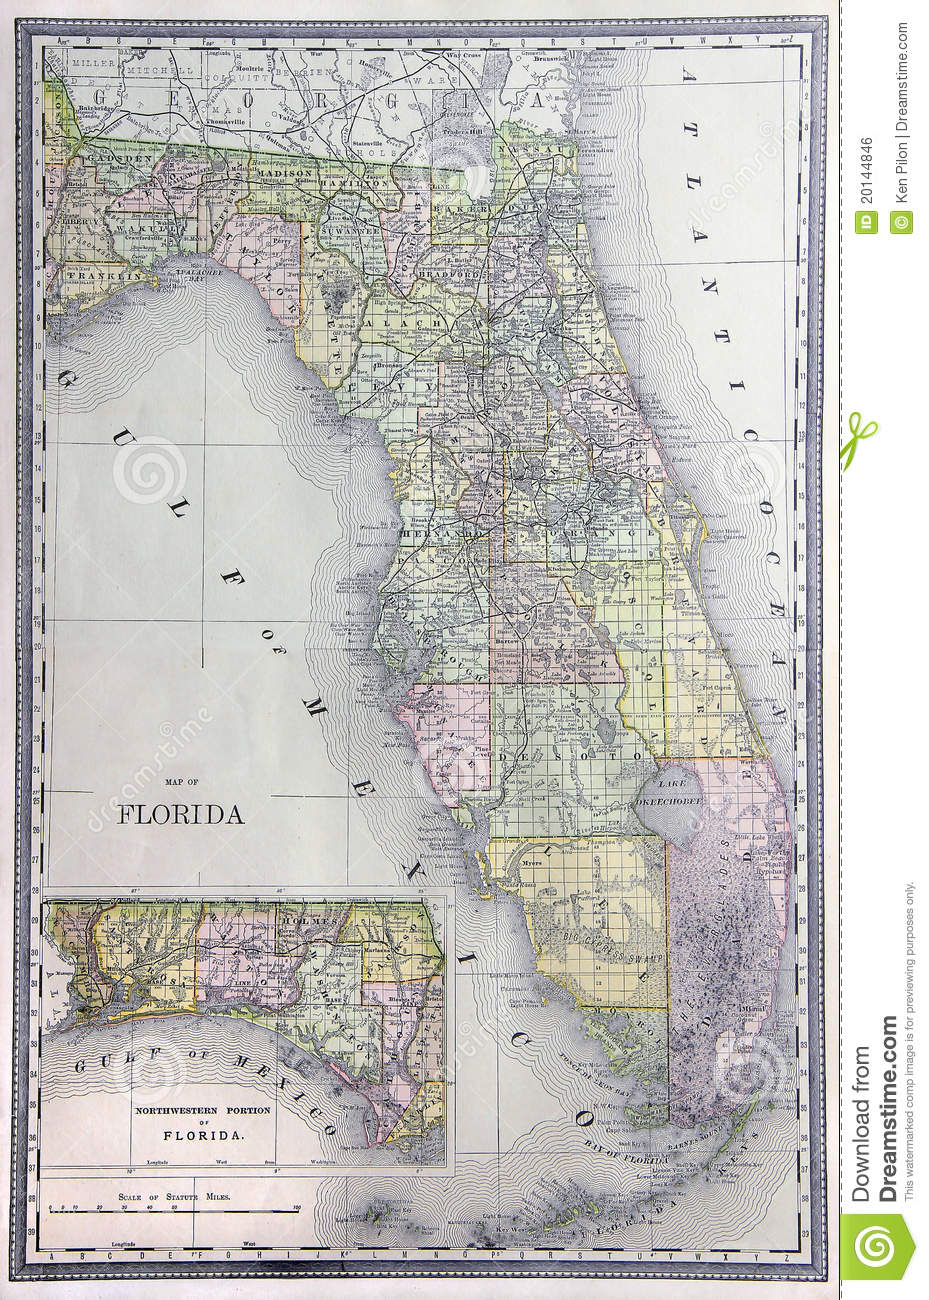 Western Florida Map.Old Map Of Florida Stock Photo Image Of Paper Atlas 20144846